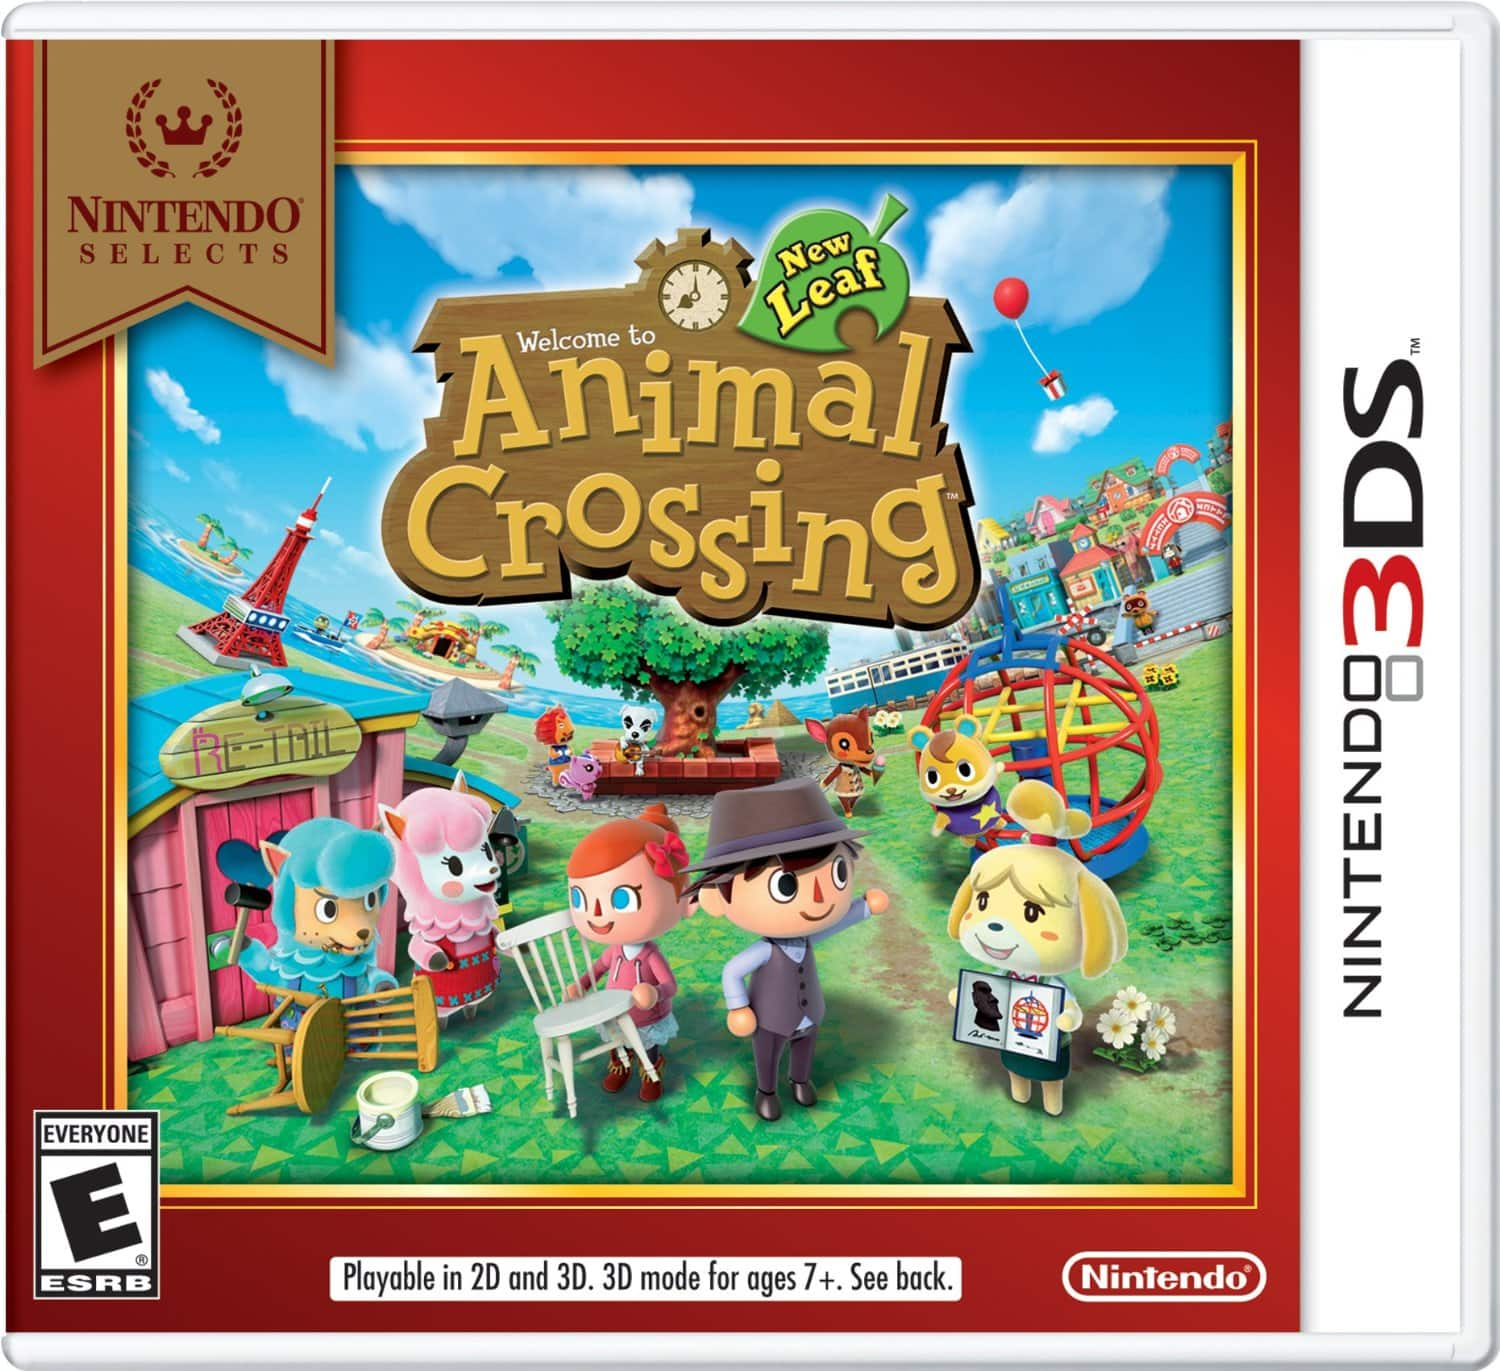 Wii U & 3DS Nintendo Selects - $16 with Free Shipping with Prime - Amazon Prime members only